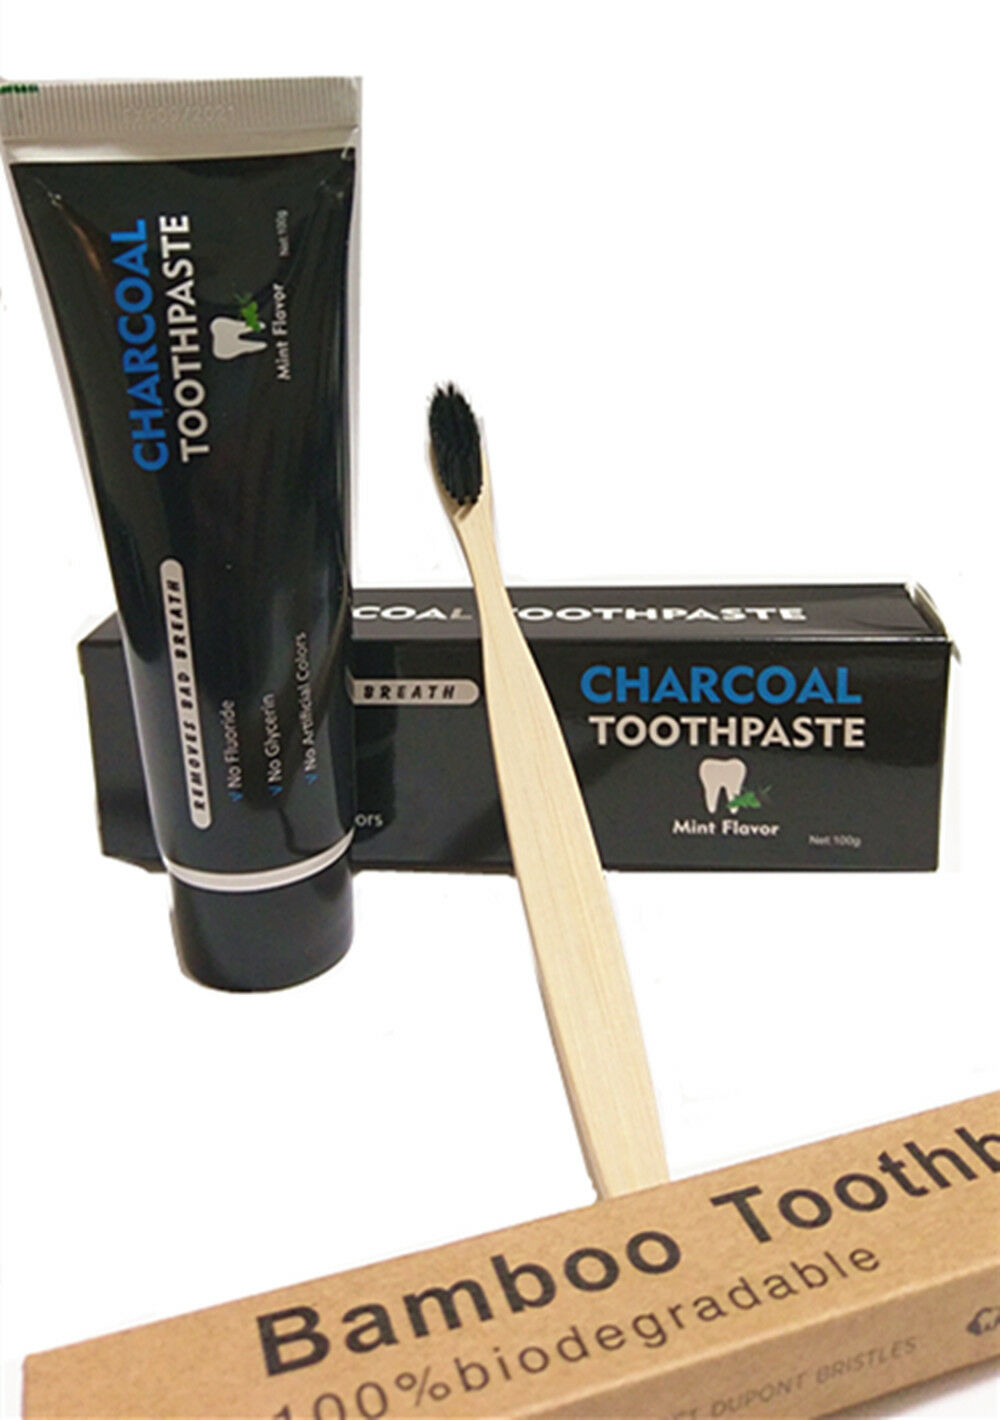 Charcole Whitening Toothpaste Activated Charcoal Tooth Paste